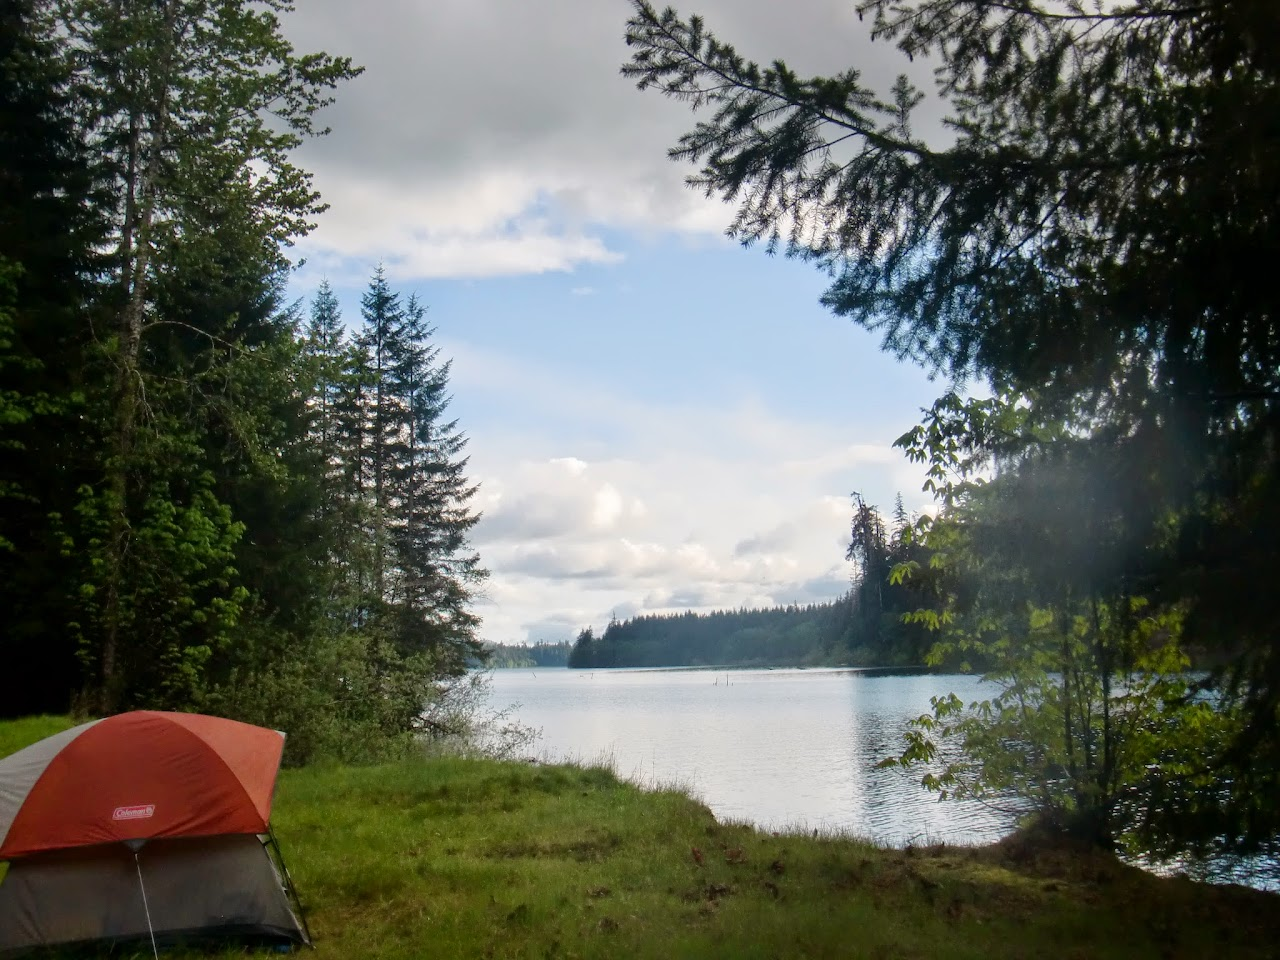 May 2014 Wynoochee Lake Camp/Canoe - CIMG5214.JPG